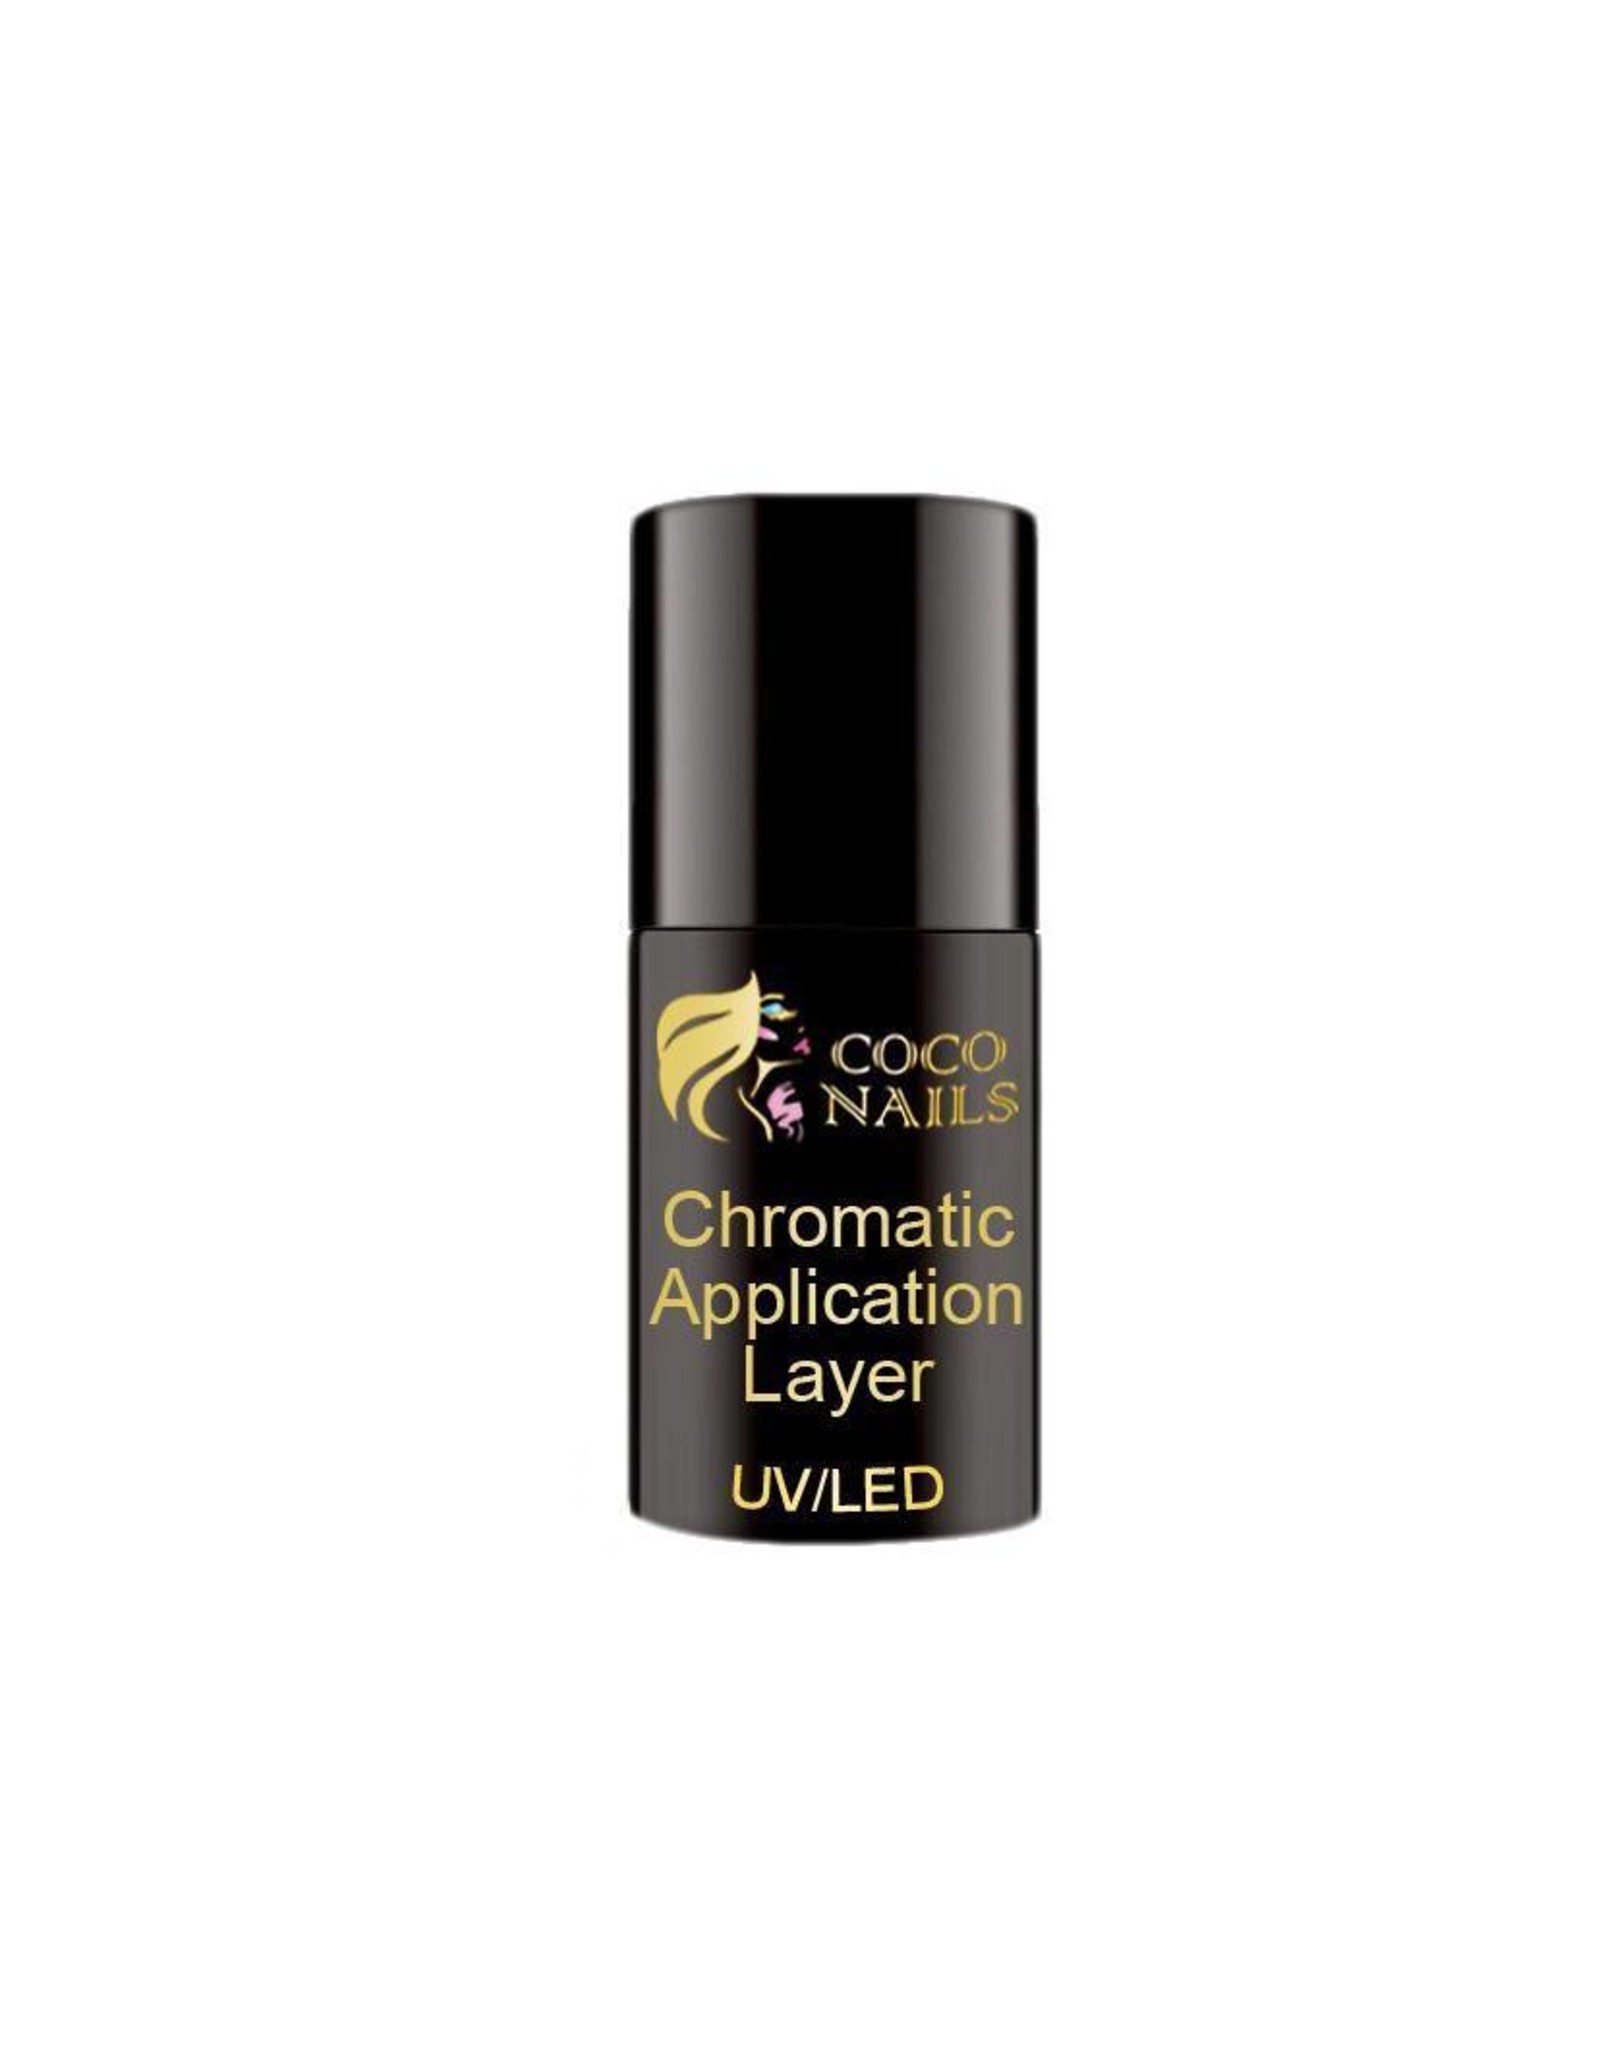 Coconails Chrome / Mirror Application Layer 5 ml